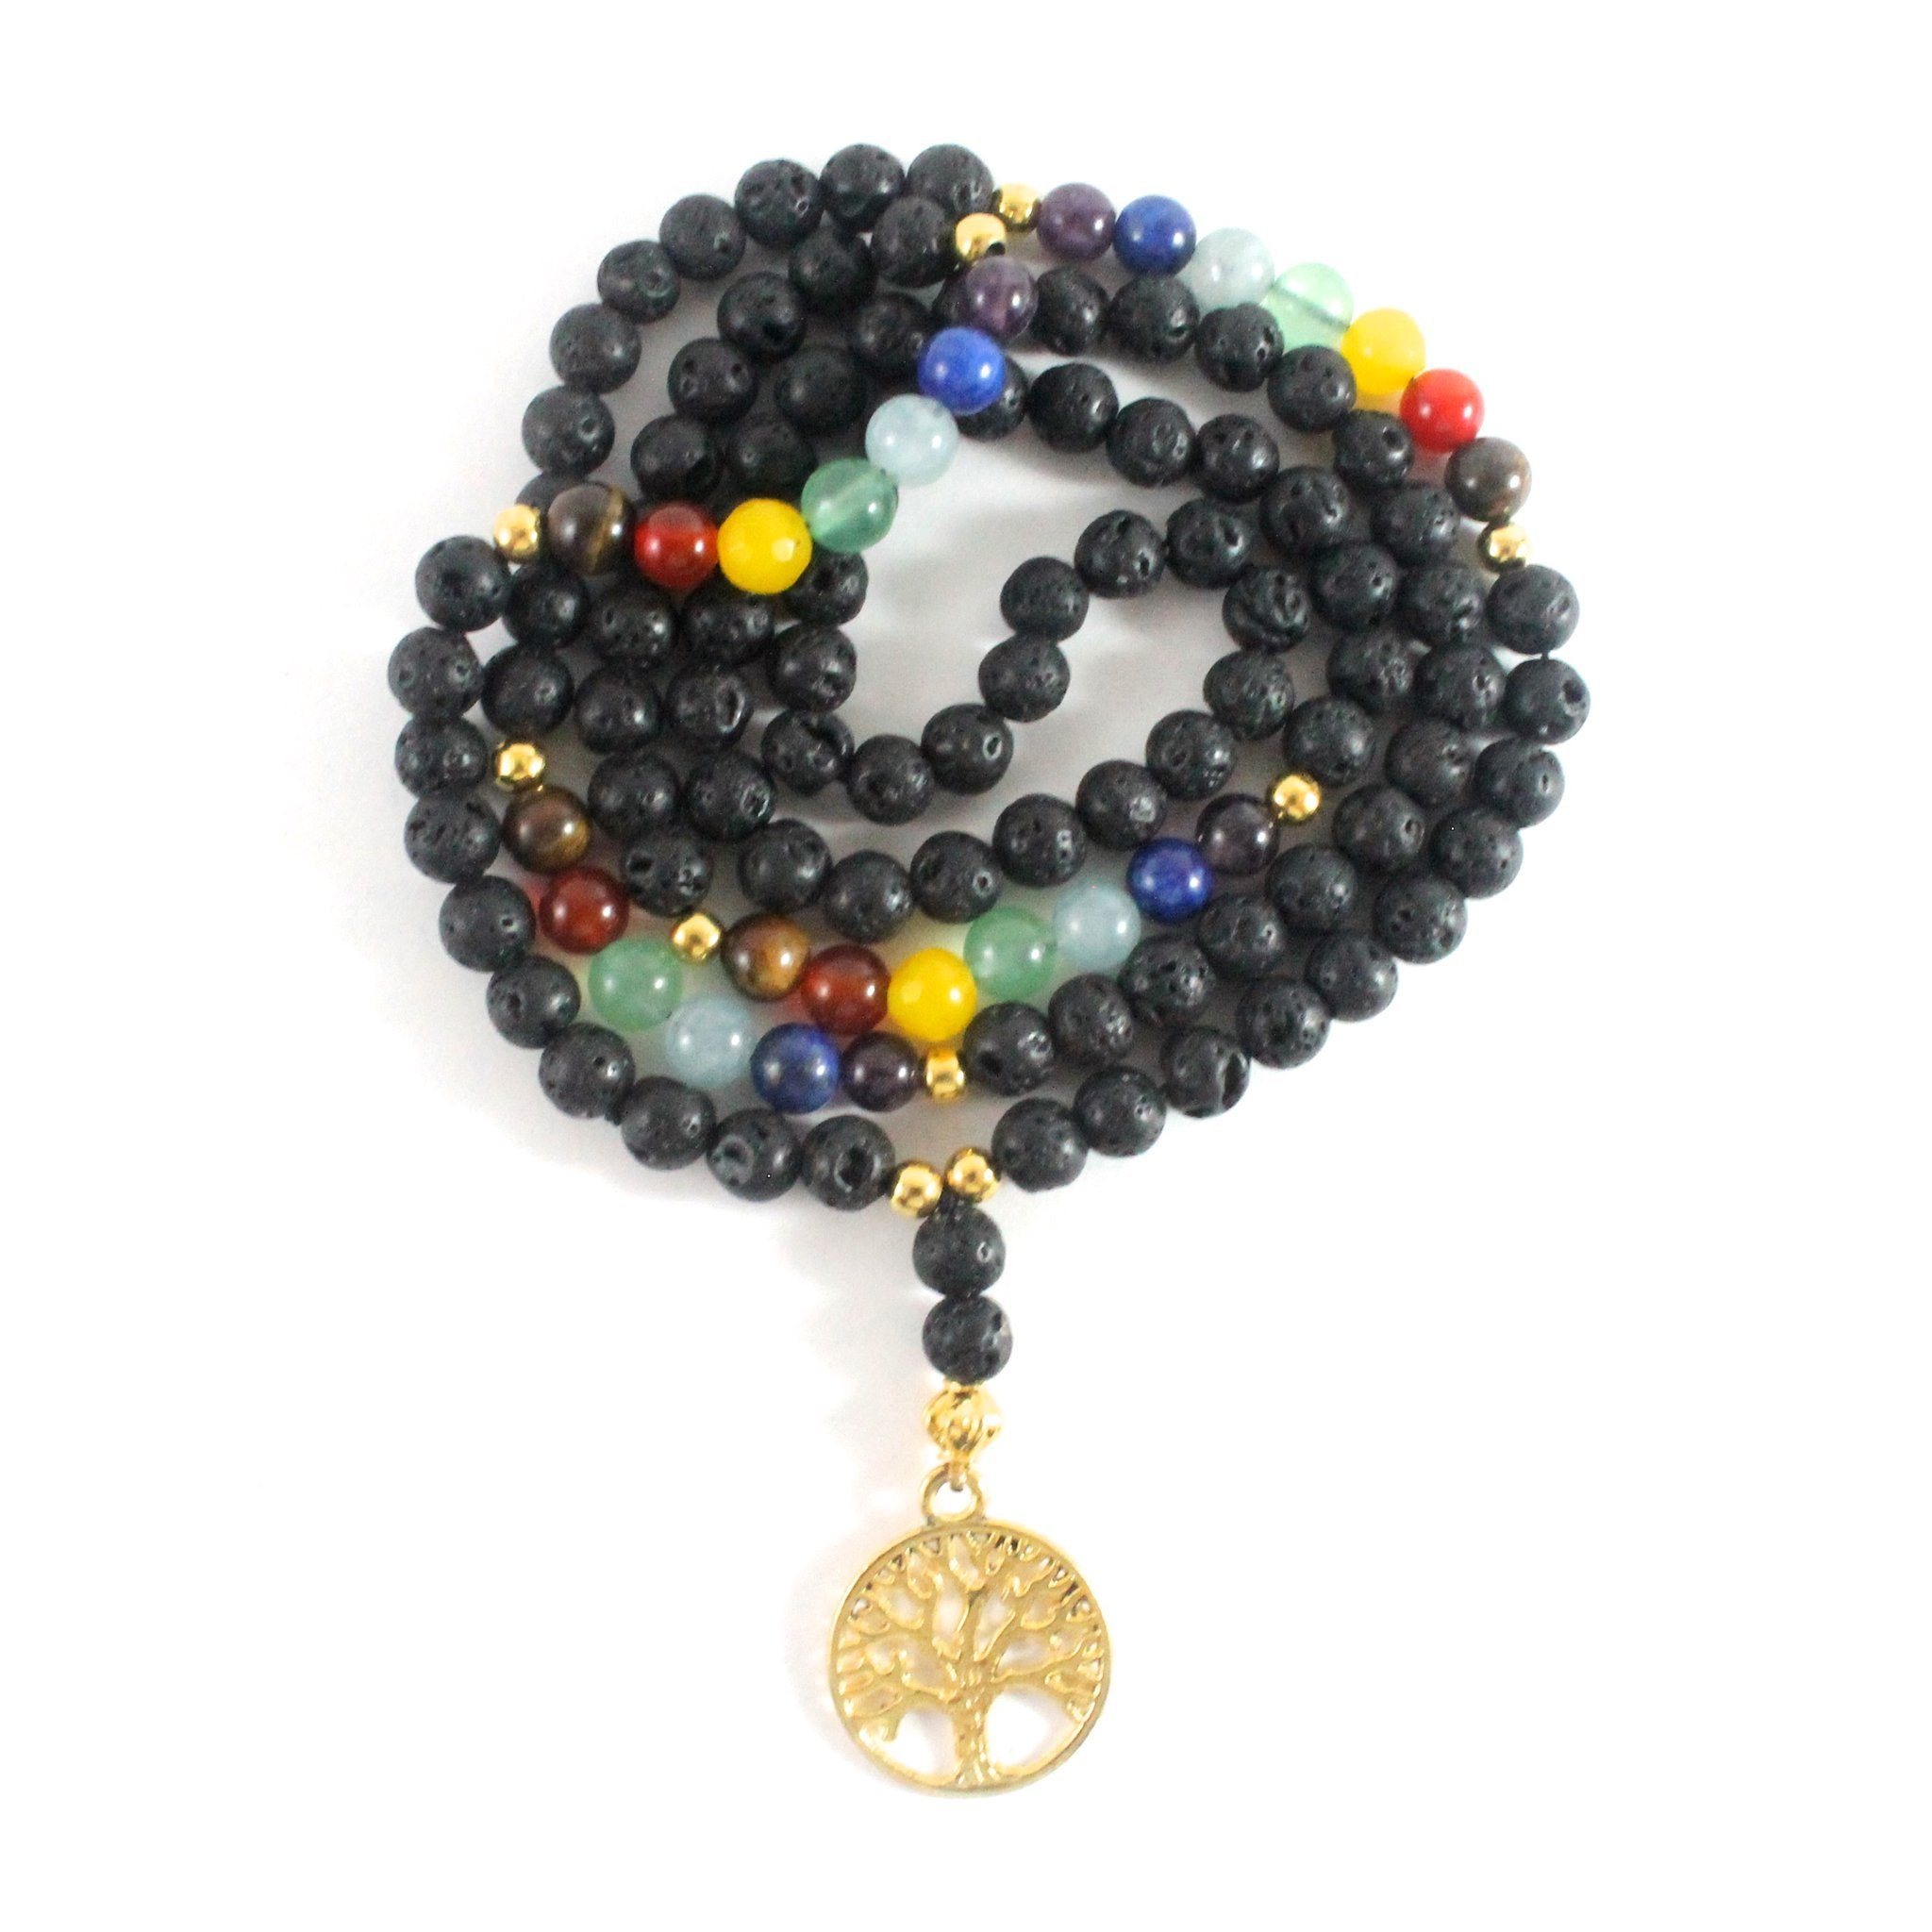 Lava Stone Necklace - Chakra Collection - BabMakkah Stores